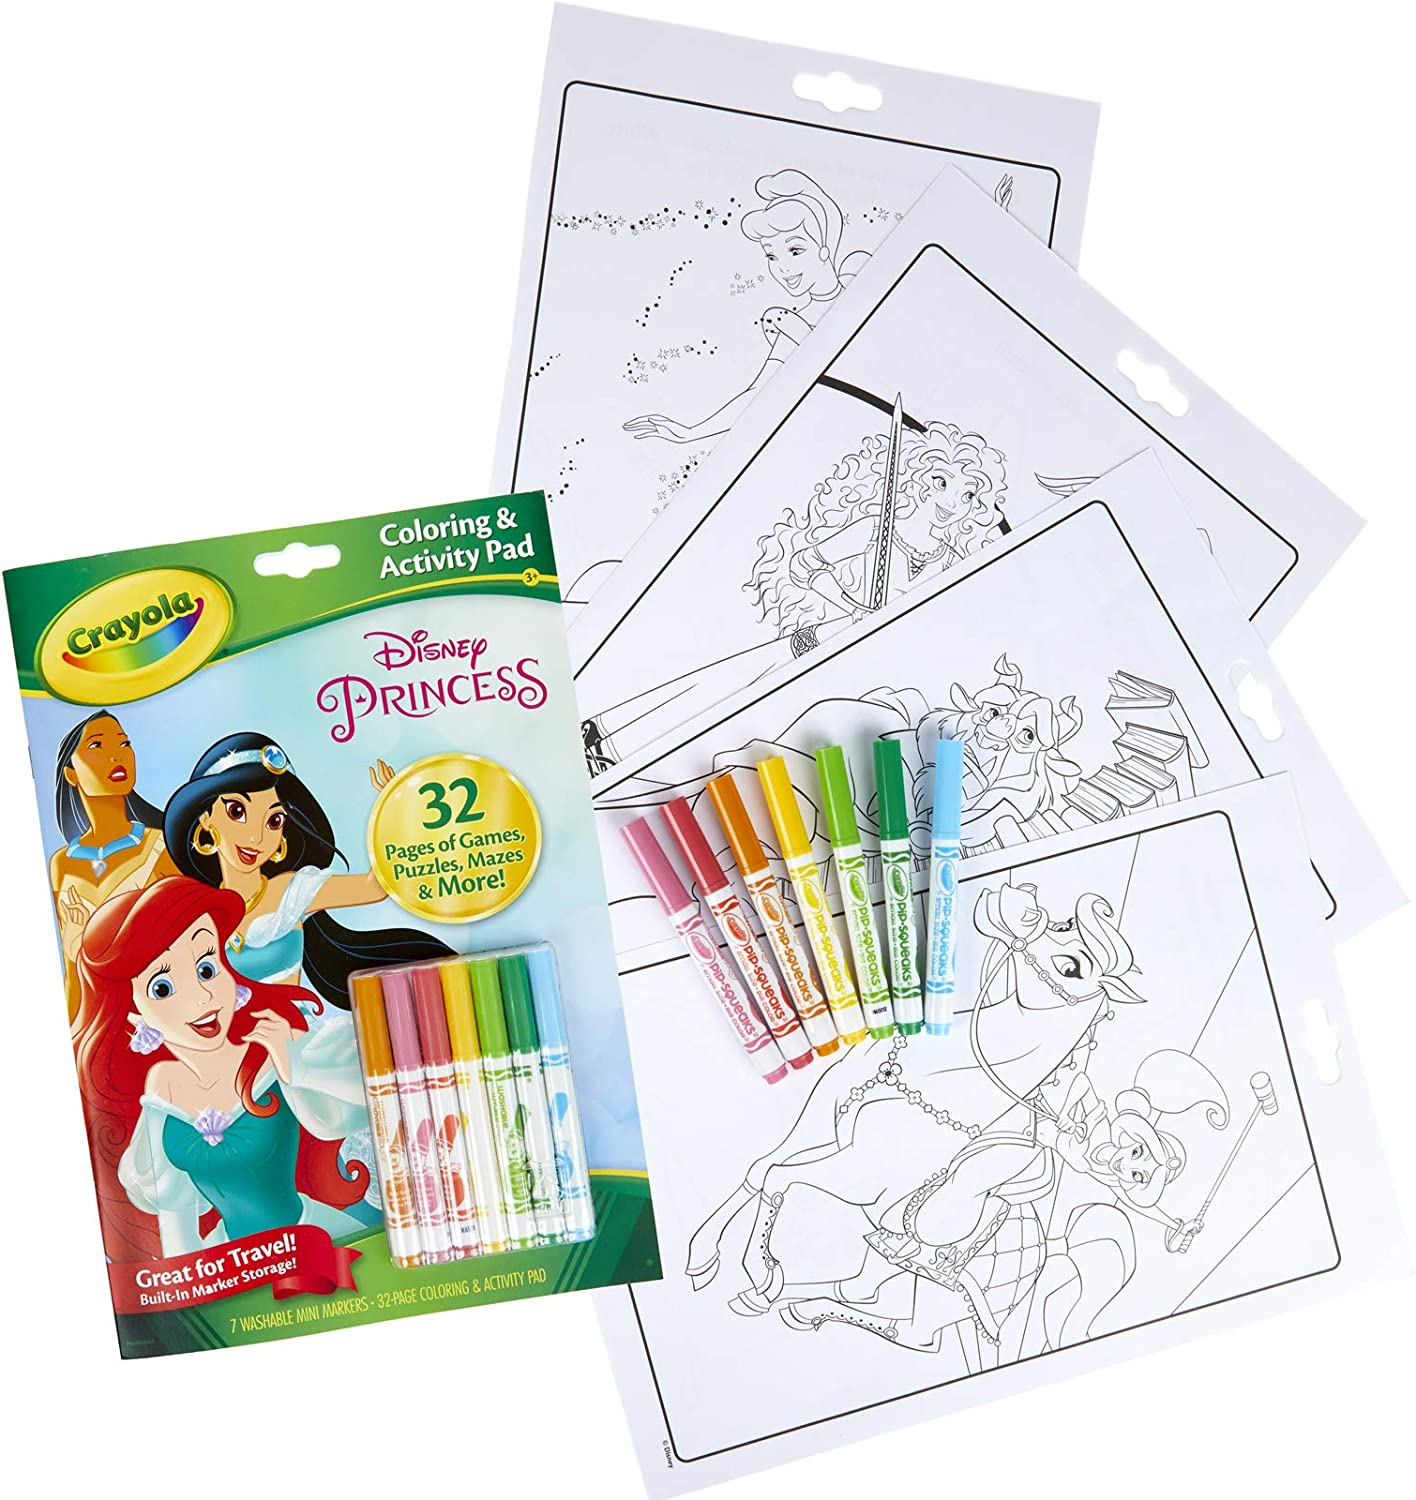 Amazon.com: Crayola Disney Princess Color & Activity Book, 32 Coloring Pages  & 7 Mini Markers, Gift for Kids, Packaging May Vary: Toys & Games